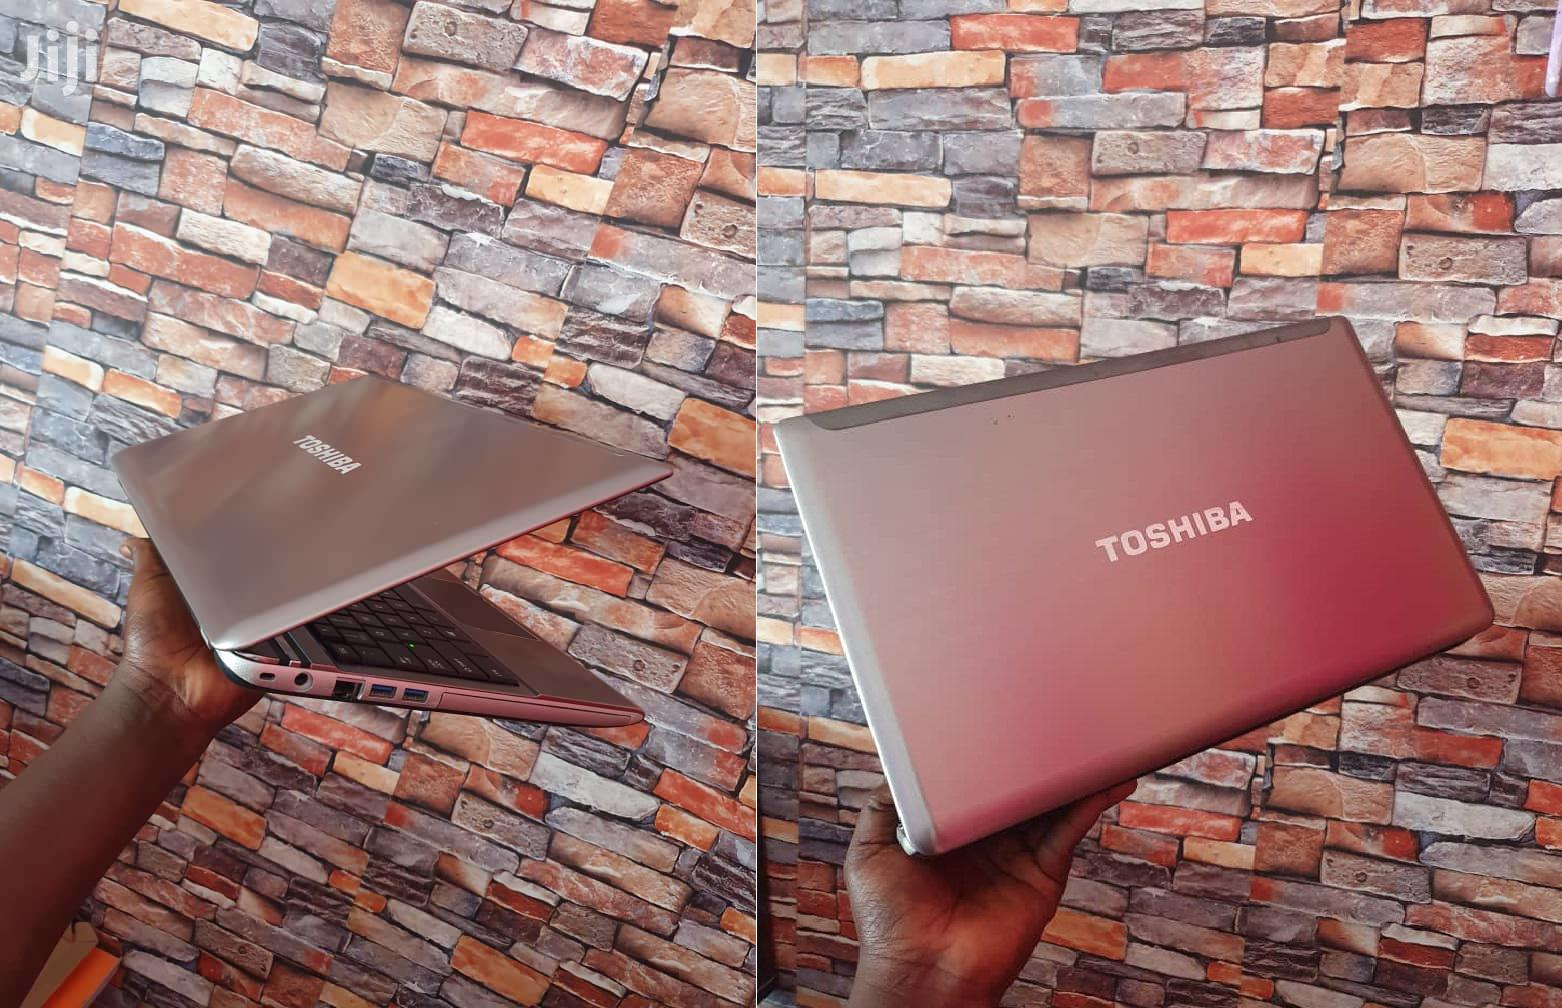 Laptop Toshiba Satellite E105 8GB Intel Core I5 HDD 500GB | Laptops & Computers for sale in Tema Metropolitan, Greater Accra, Ghana